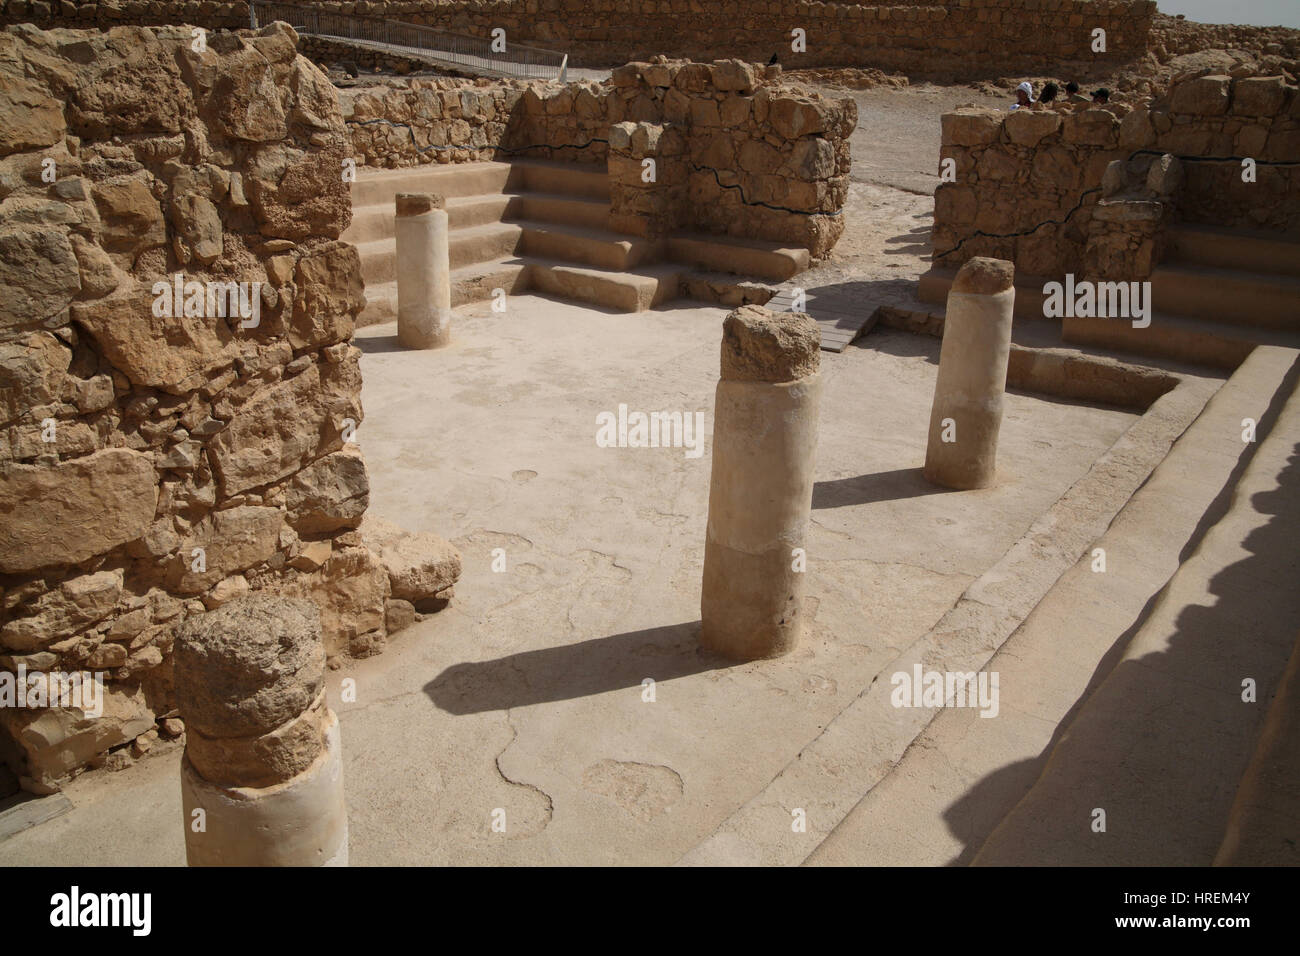 A building with columns and benches built by King Herod the Great and turned to a synagogue by the rebels in the Stock Photo